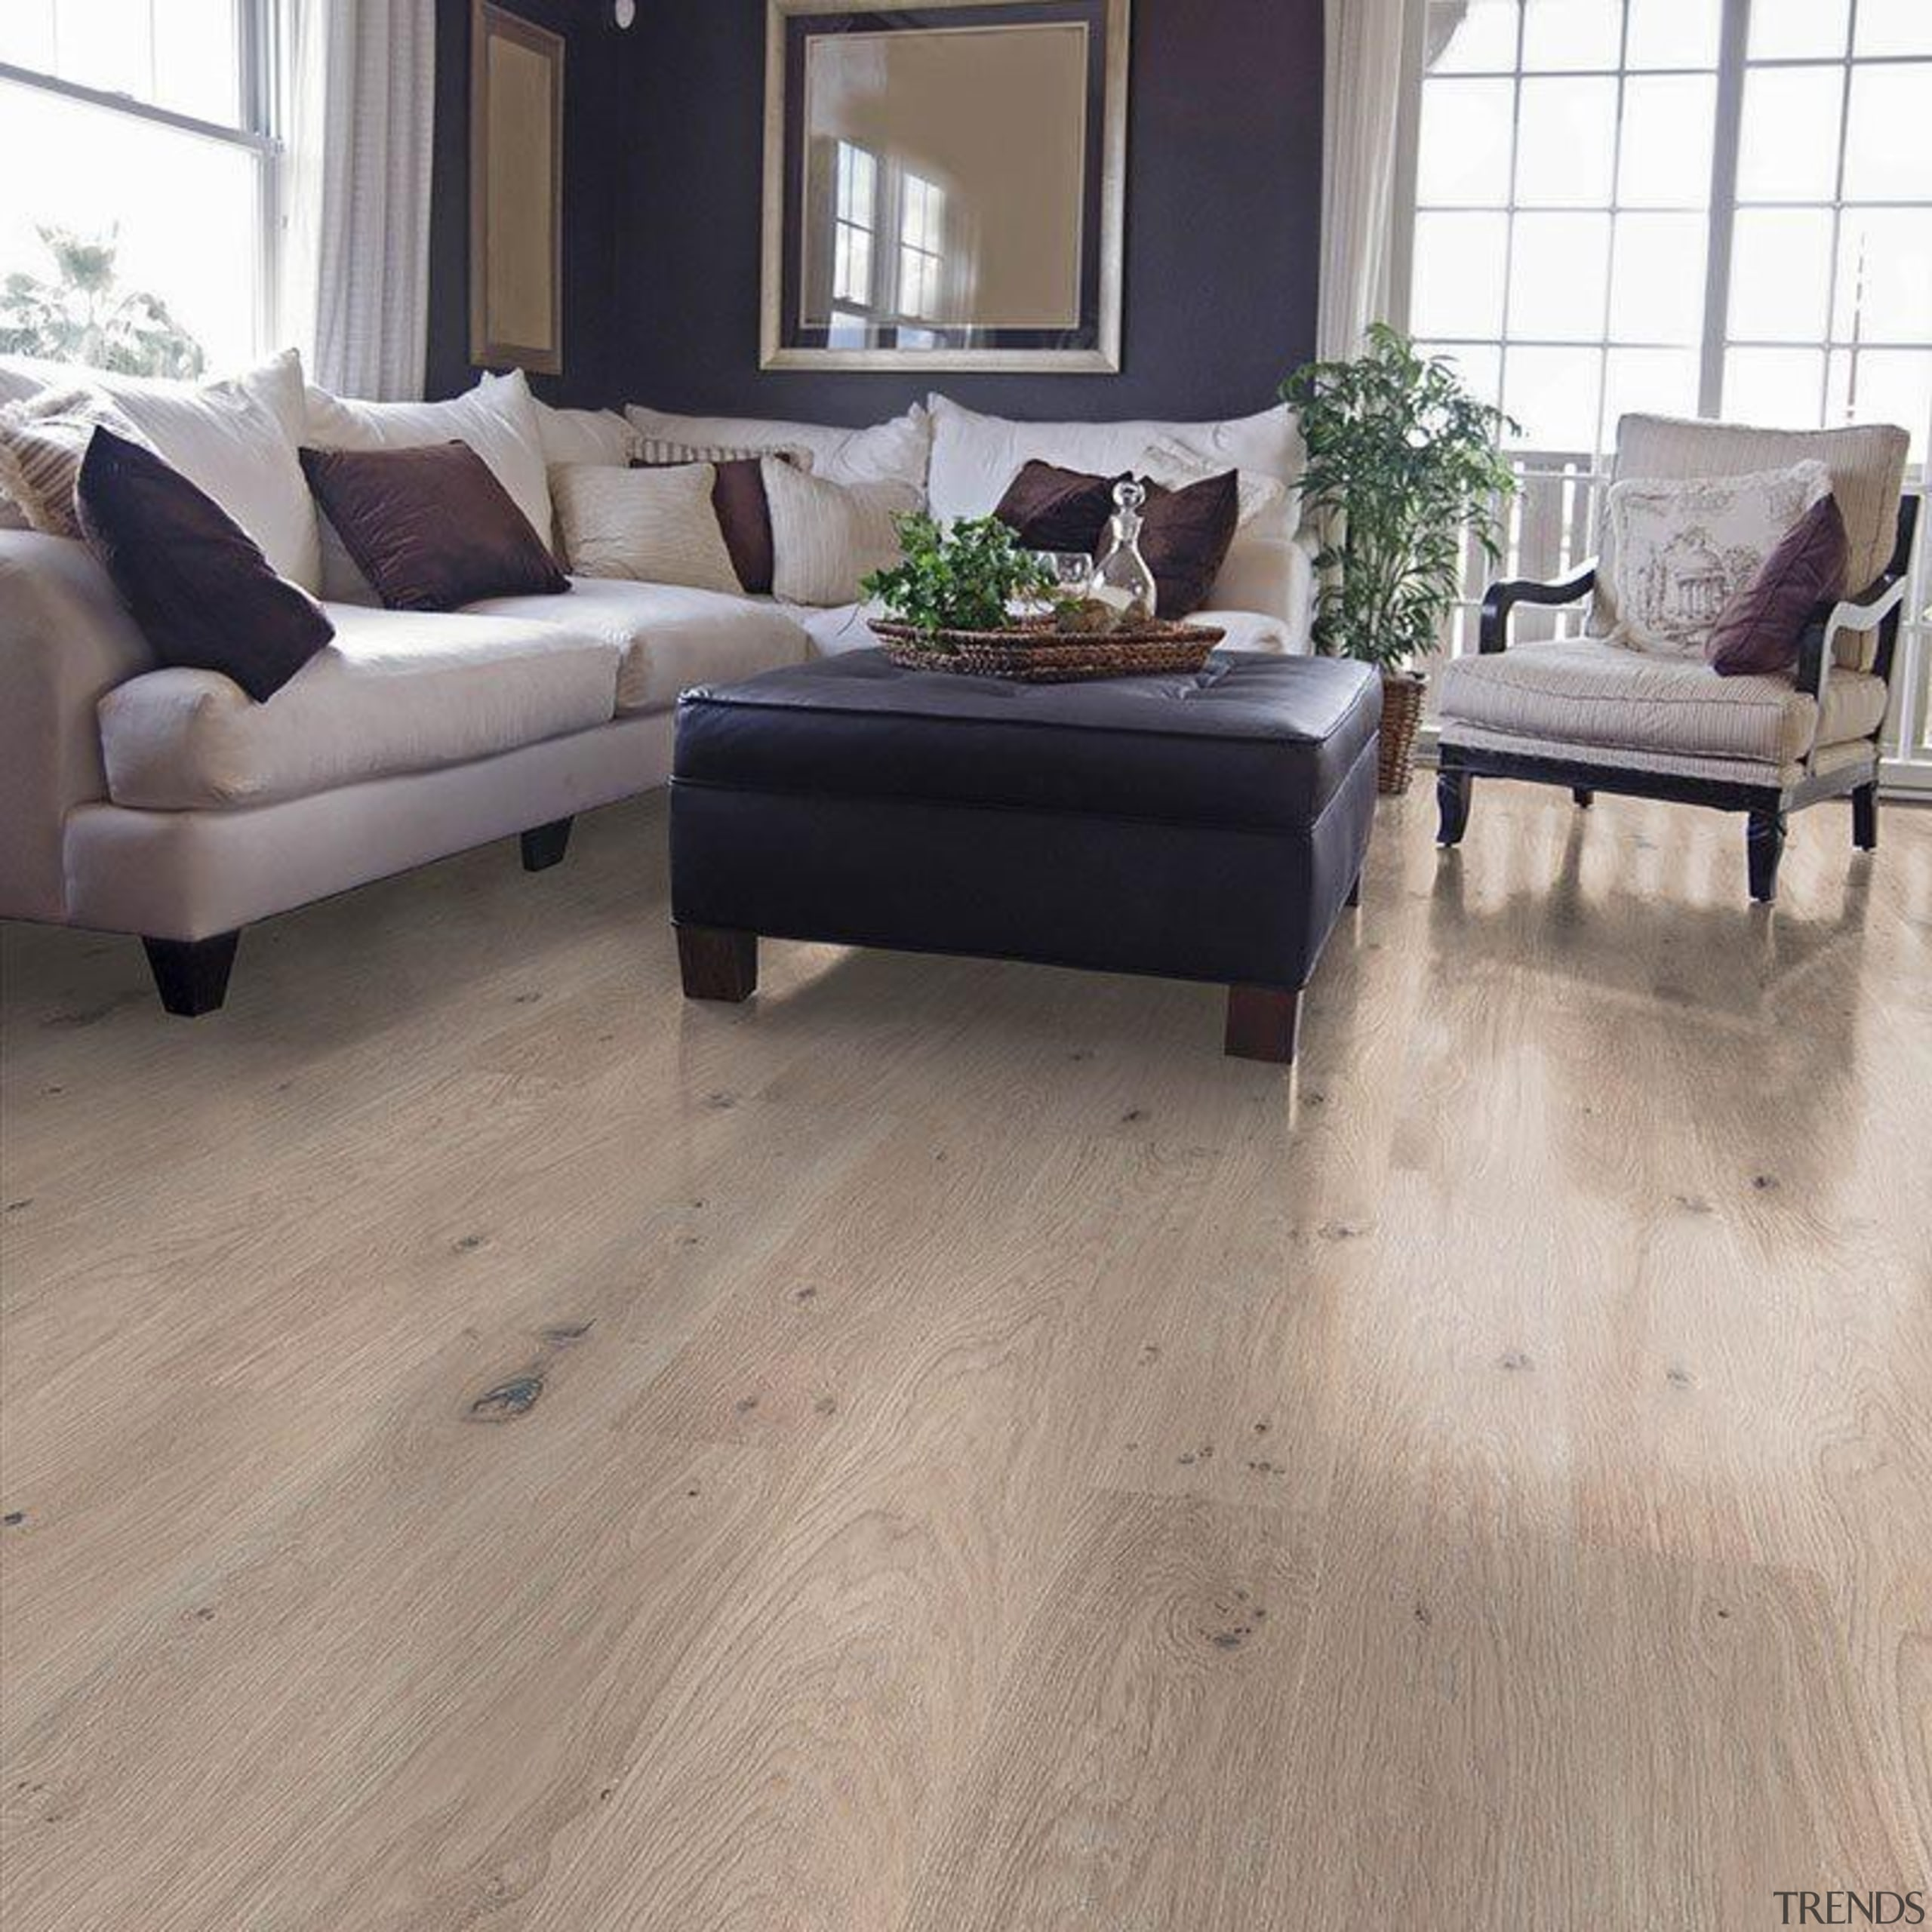 """""""Neo by Classen"""" introduces a new generation of coffee table, floor, flooring, furniture, hardwood, home, interior design, laminate flooring, living room, table, tile, wood, wood flooring, wood stain, gray"""